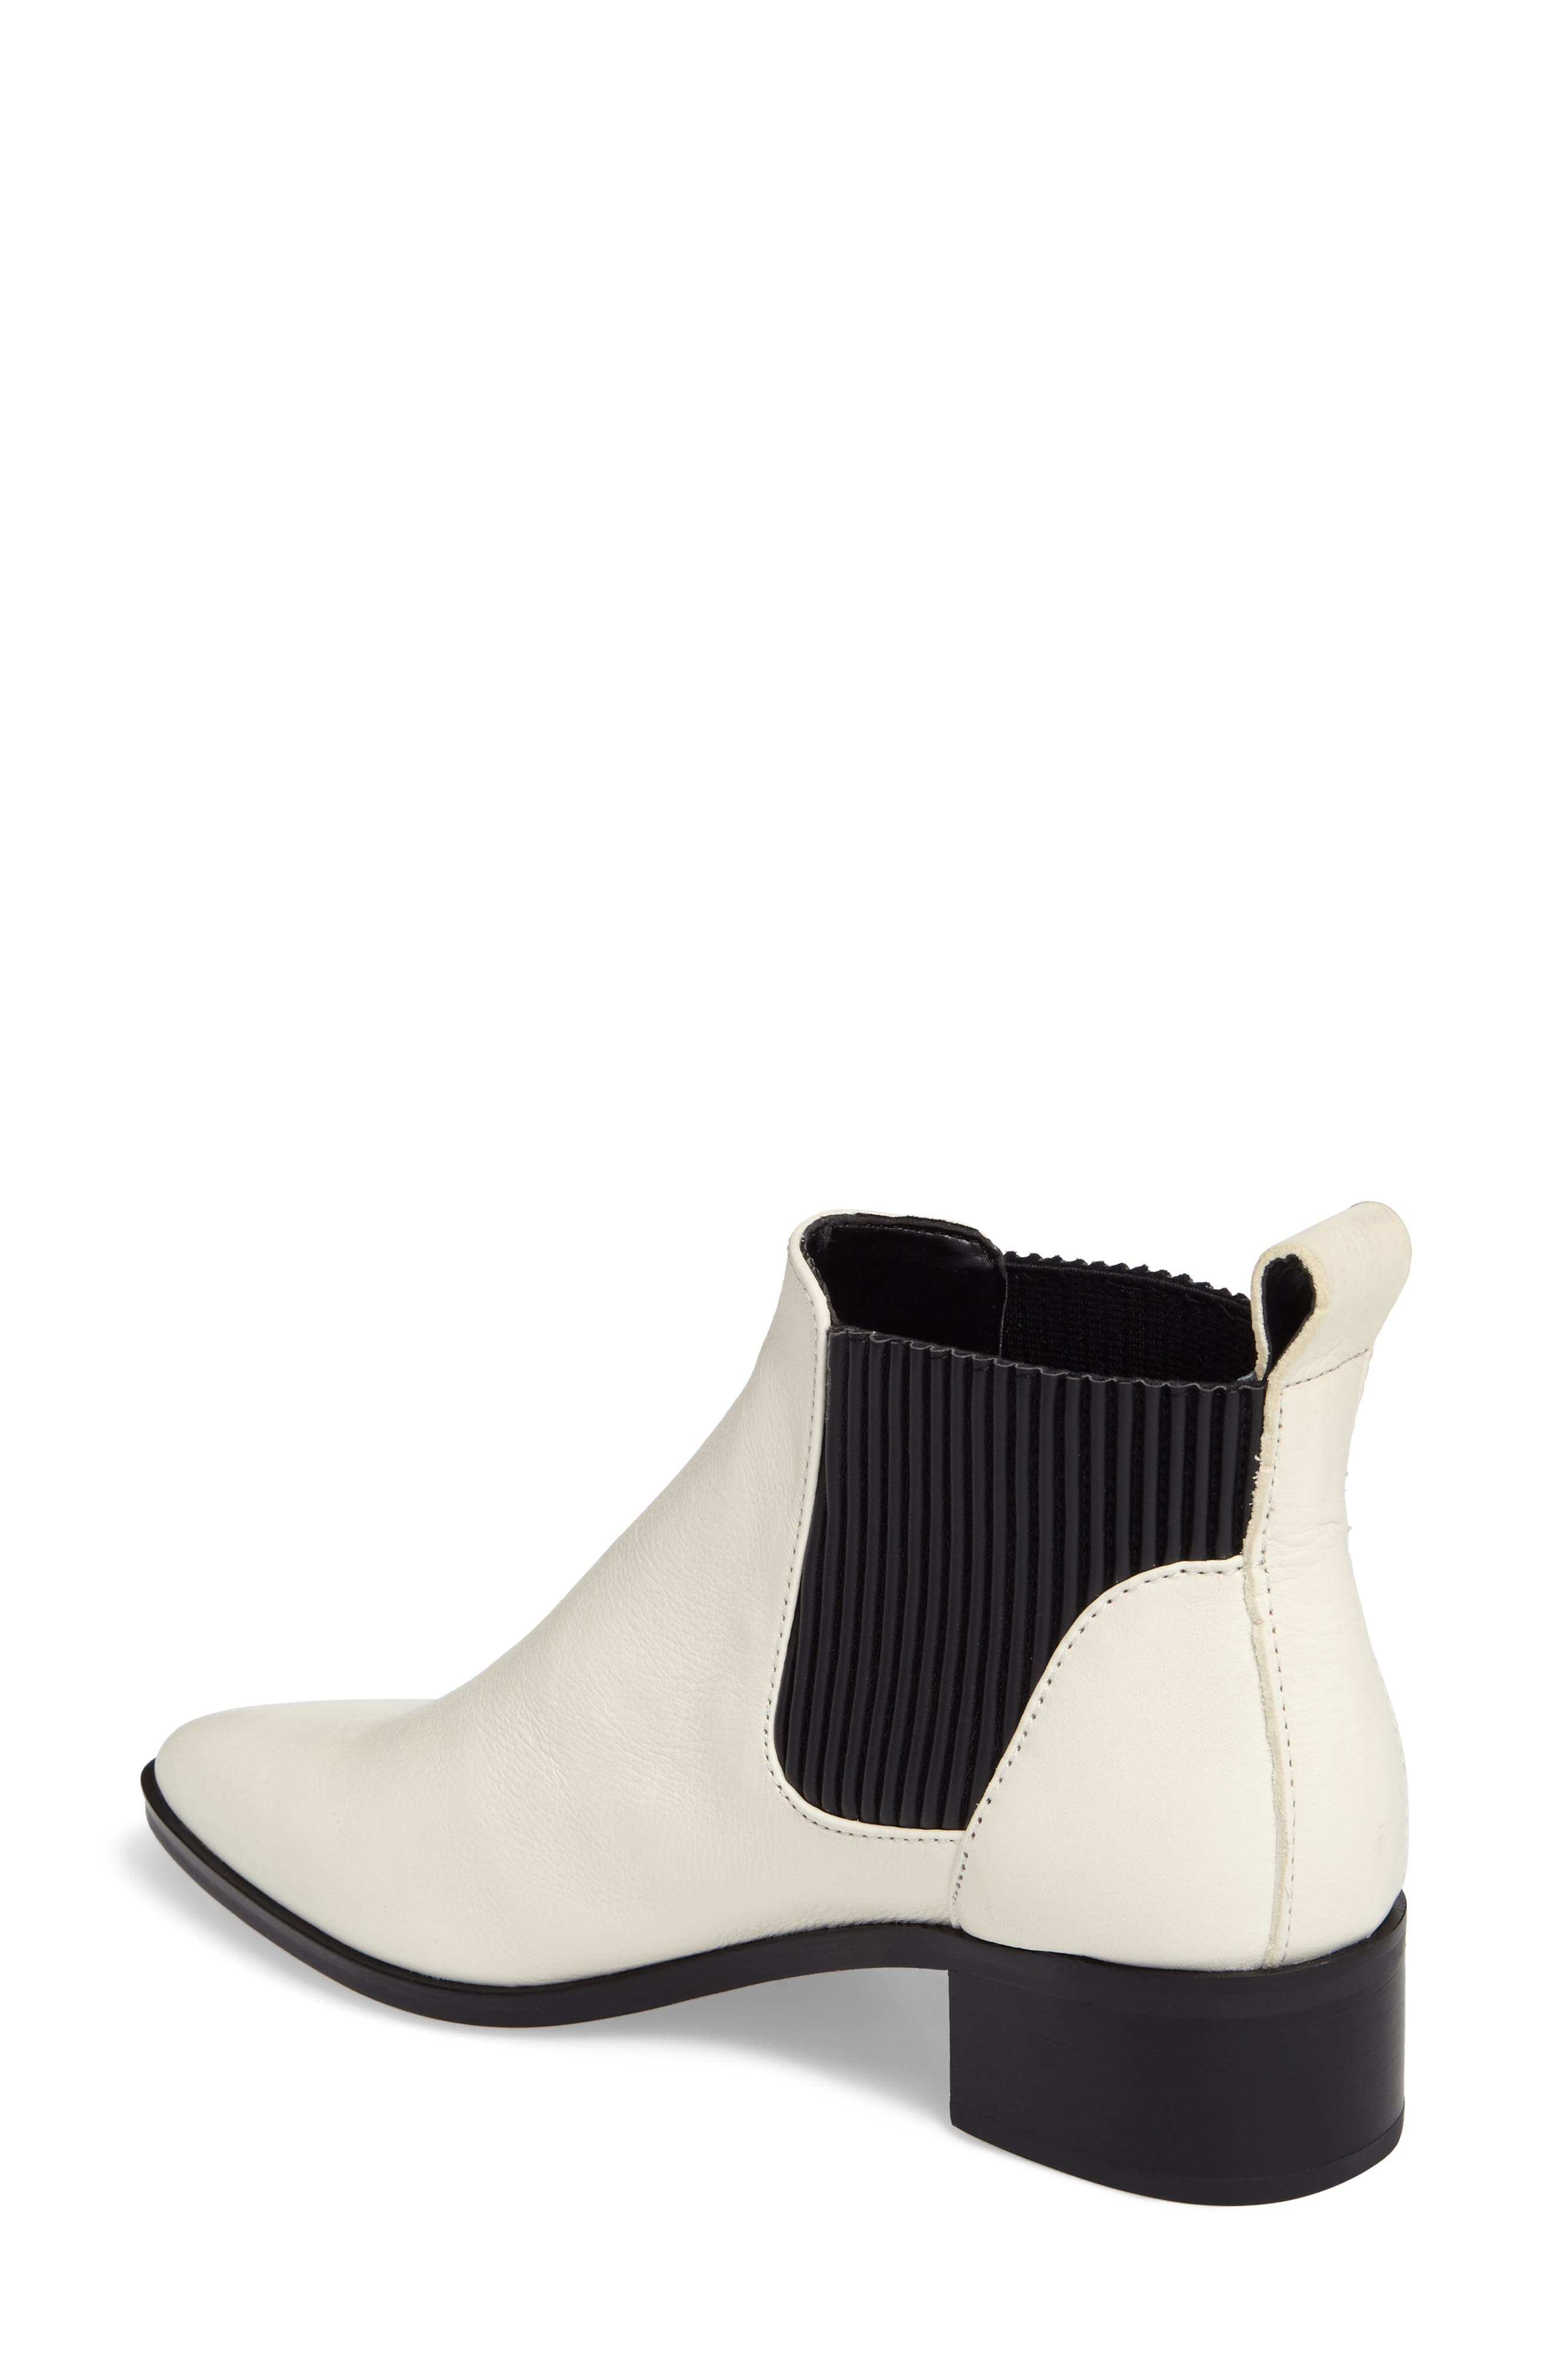 Macie Pointy Toe Chelsea Bootie,                             Alternate thumbnail 8, color,